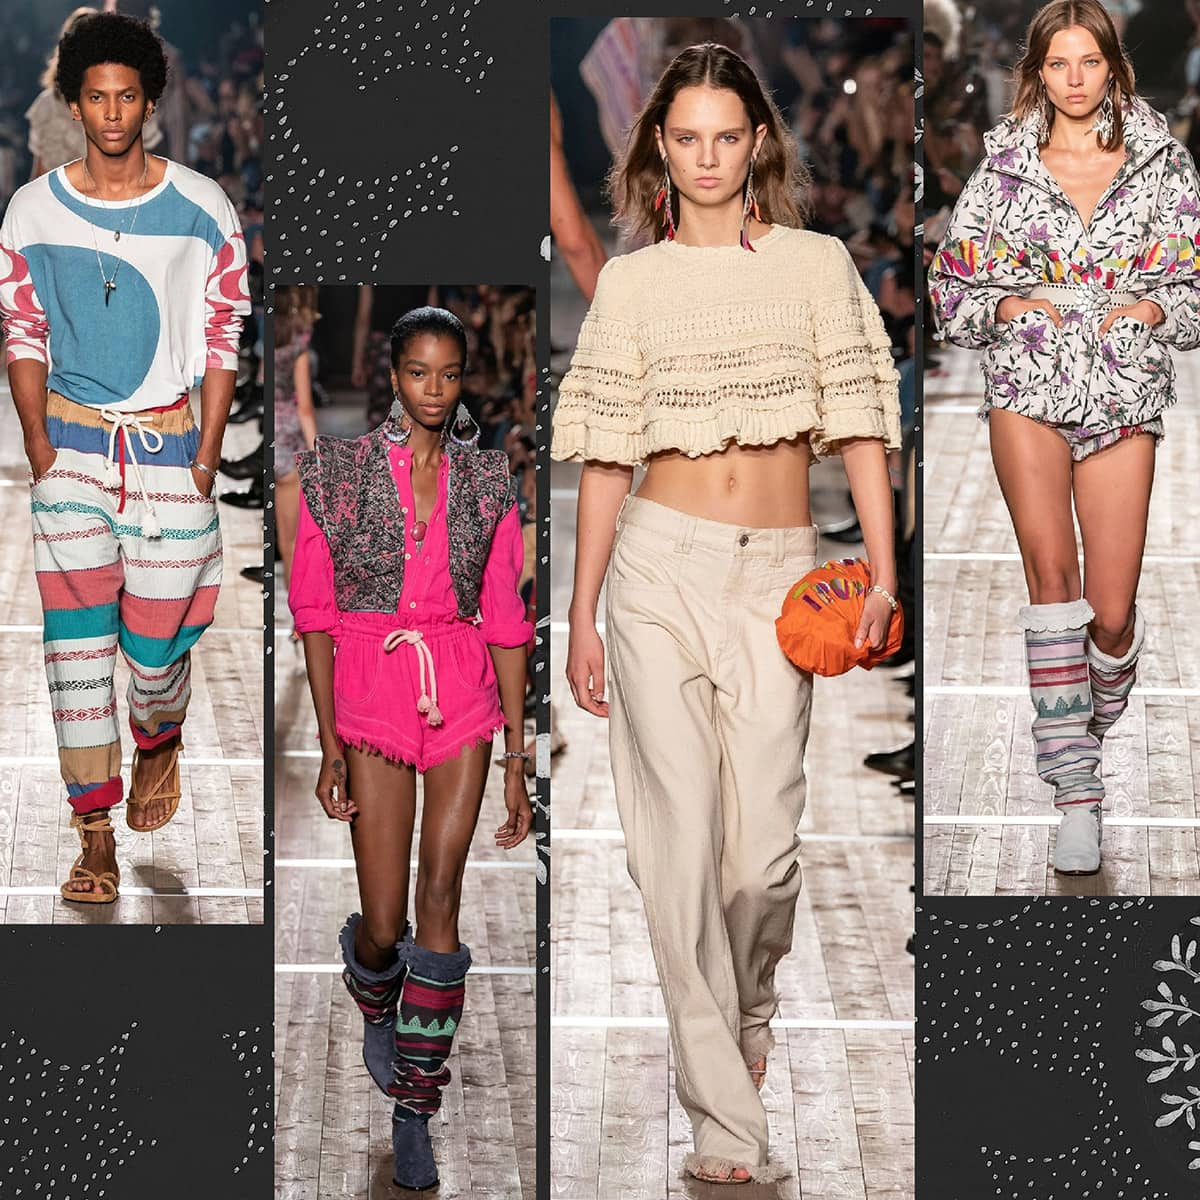 Isabelle Marant Spring Summer 2020 Paris Fashion Week by RUNWAY MAGAZINE